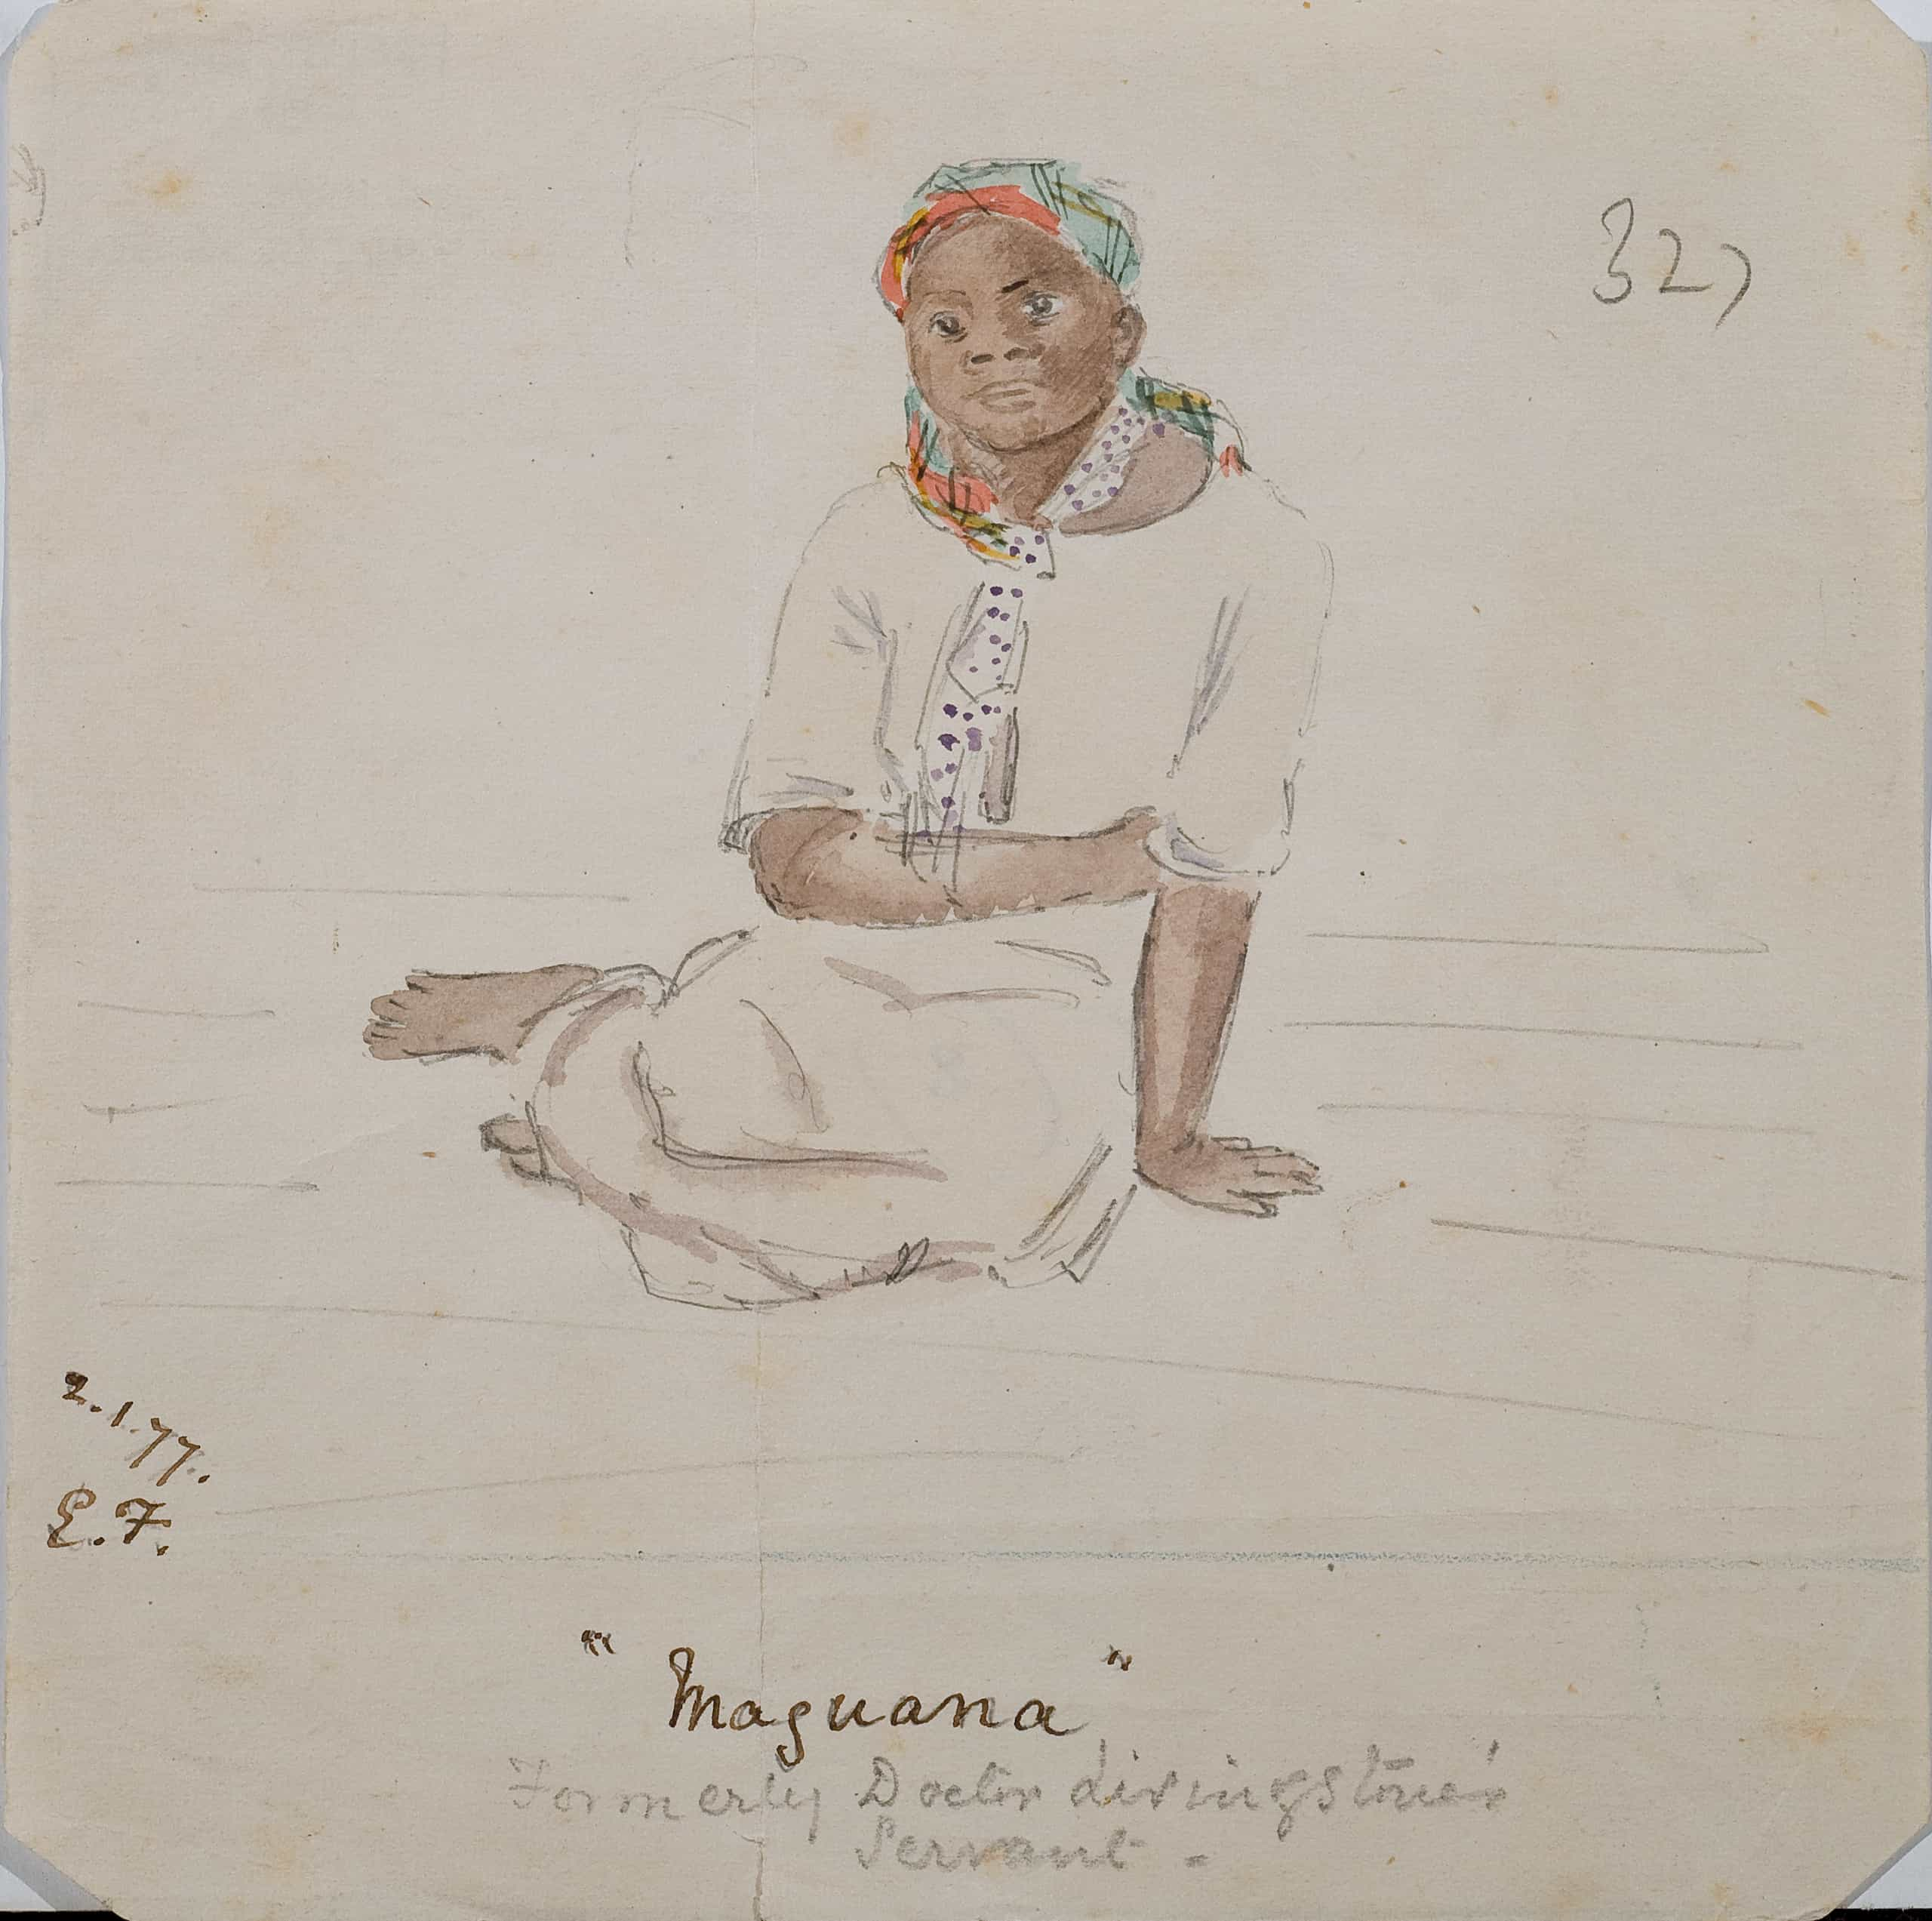 Maguana - formerly David Livingstone's servant Lilly Frere, RGS Images Online, 21/01/1877.